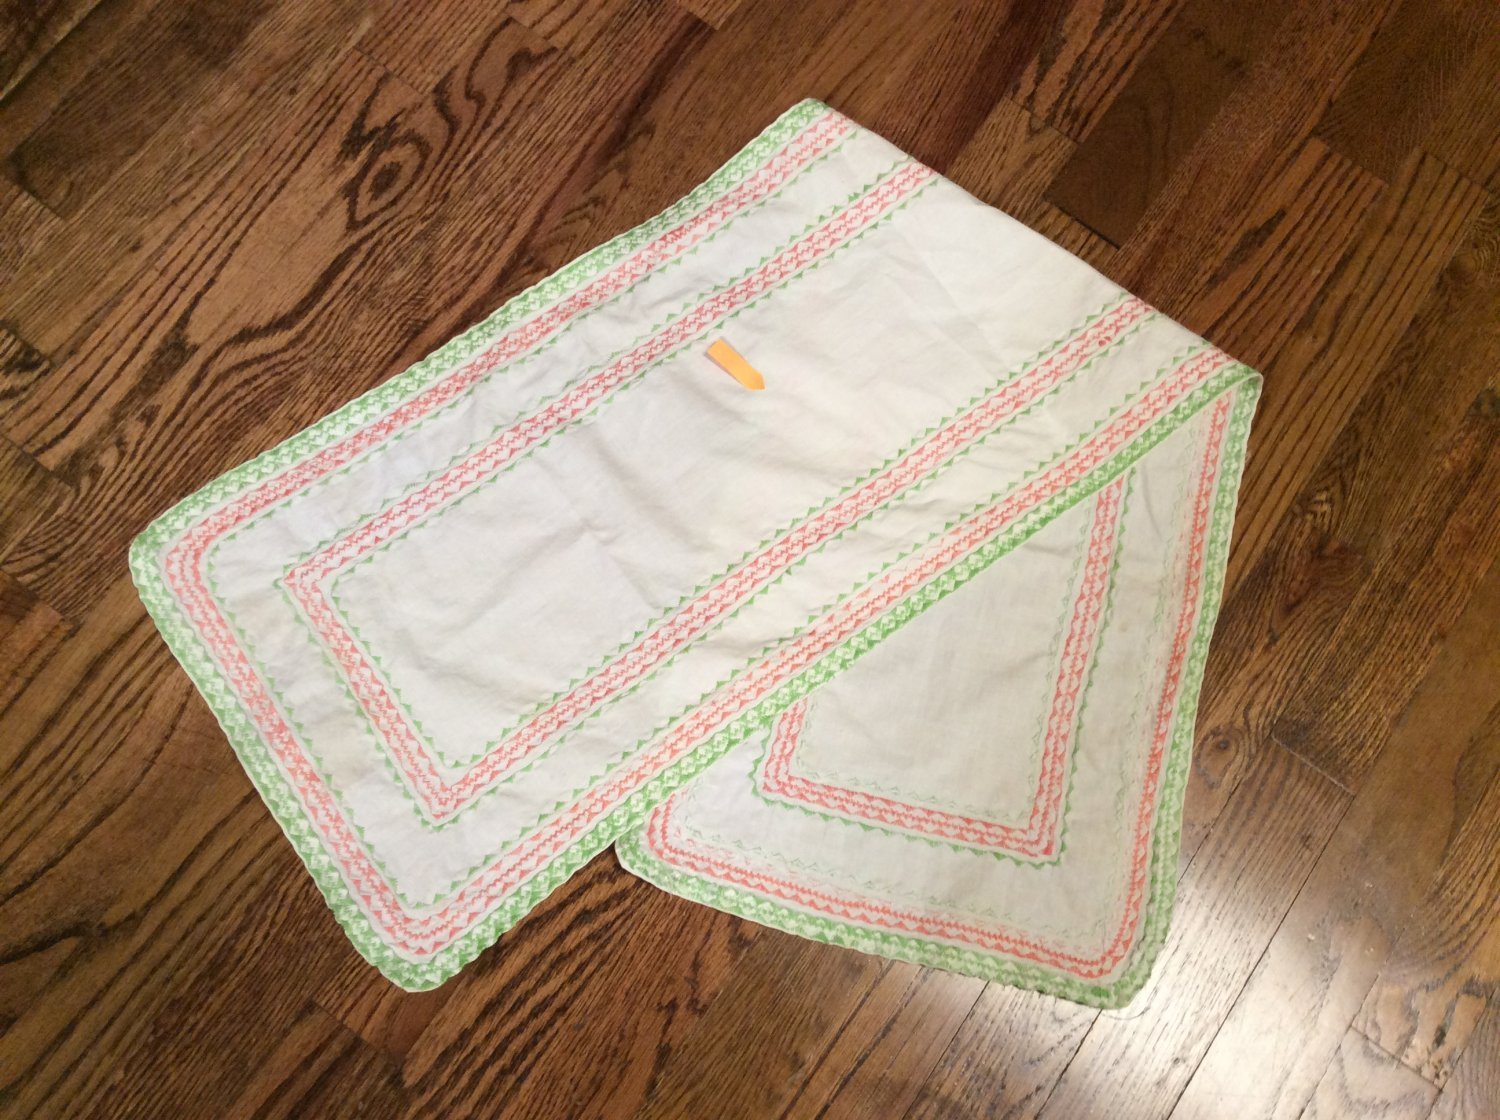 """39.5"""" Cotton Embellished Table Runner, Scarf - Green & Peach (Possibly Homemade)"""